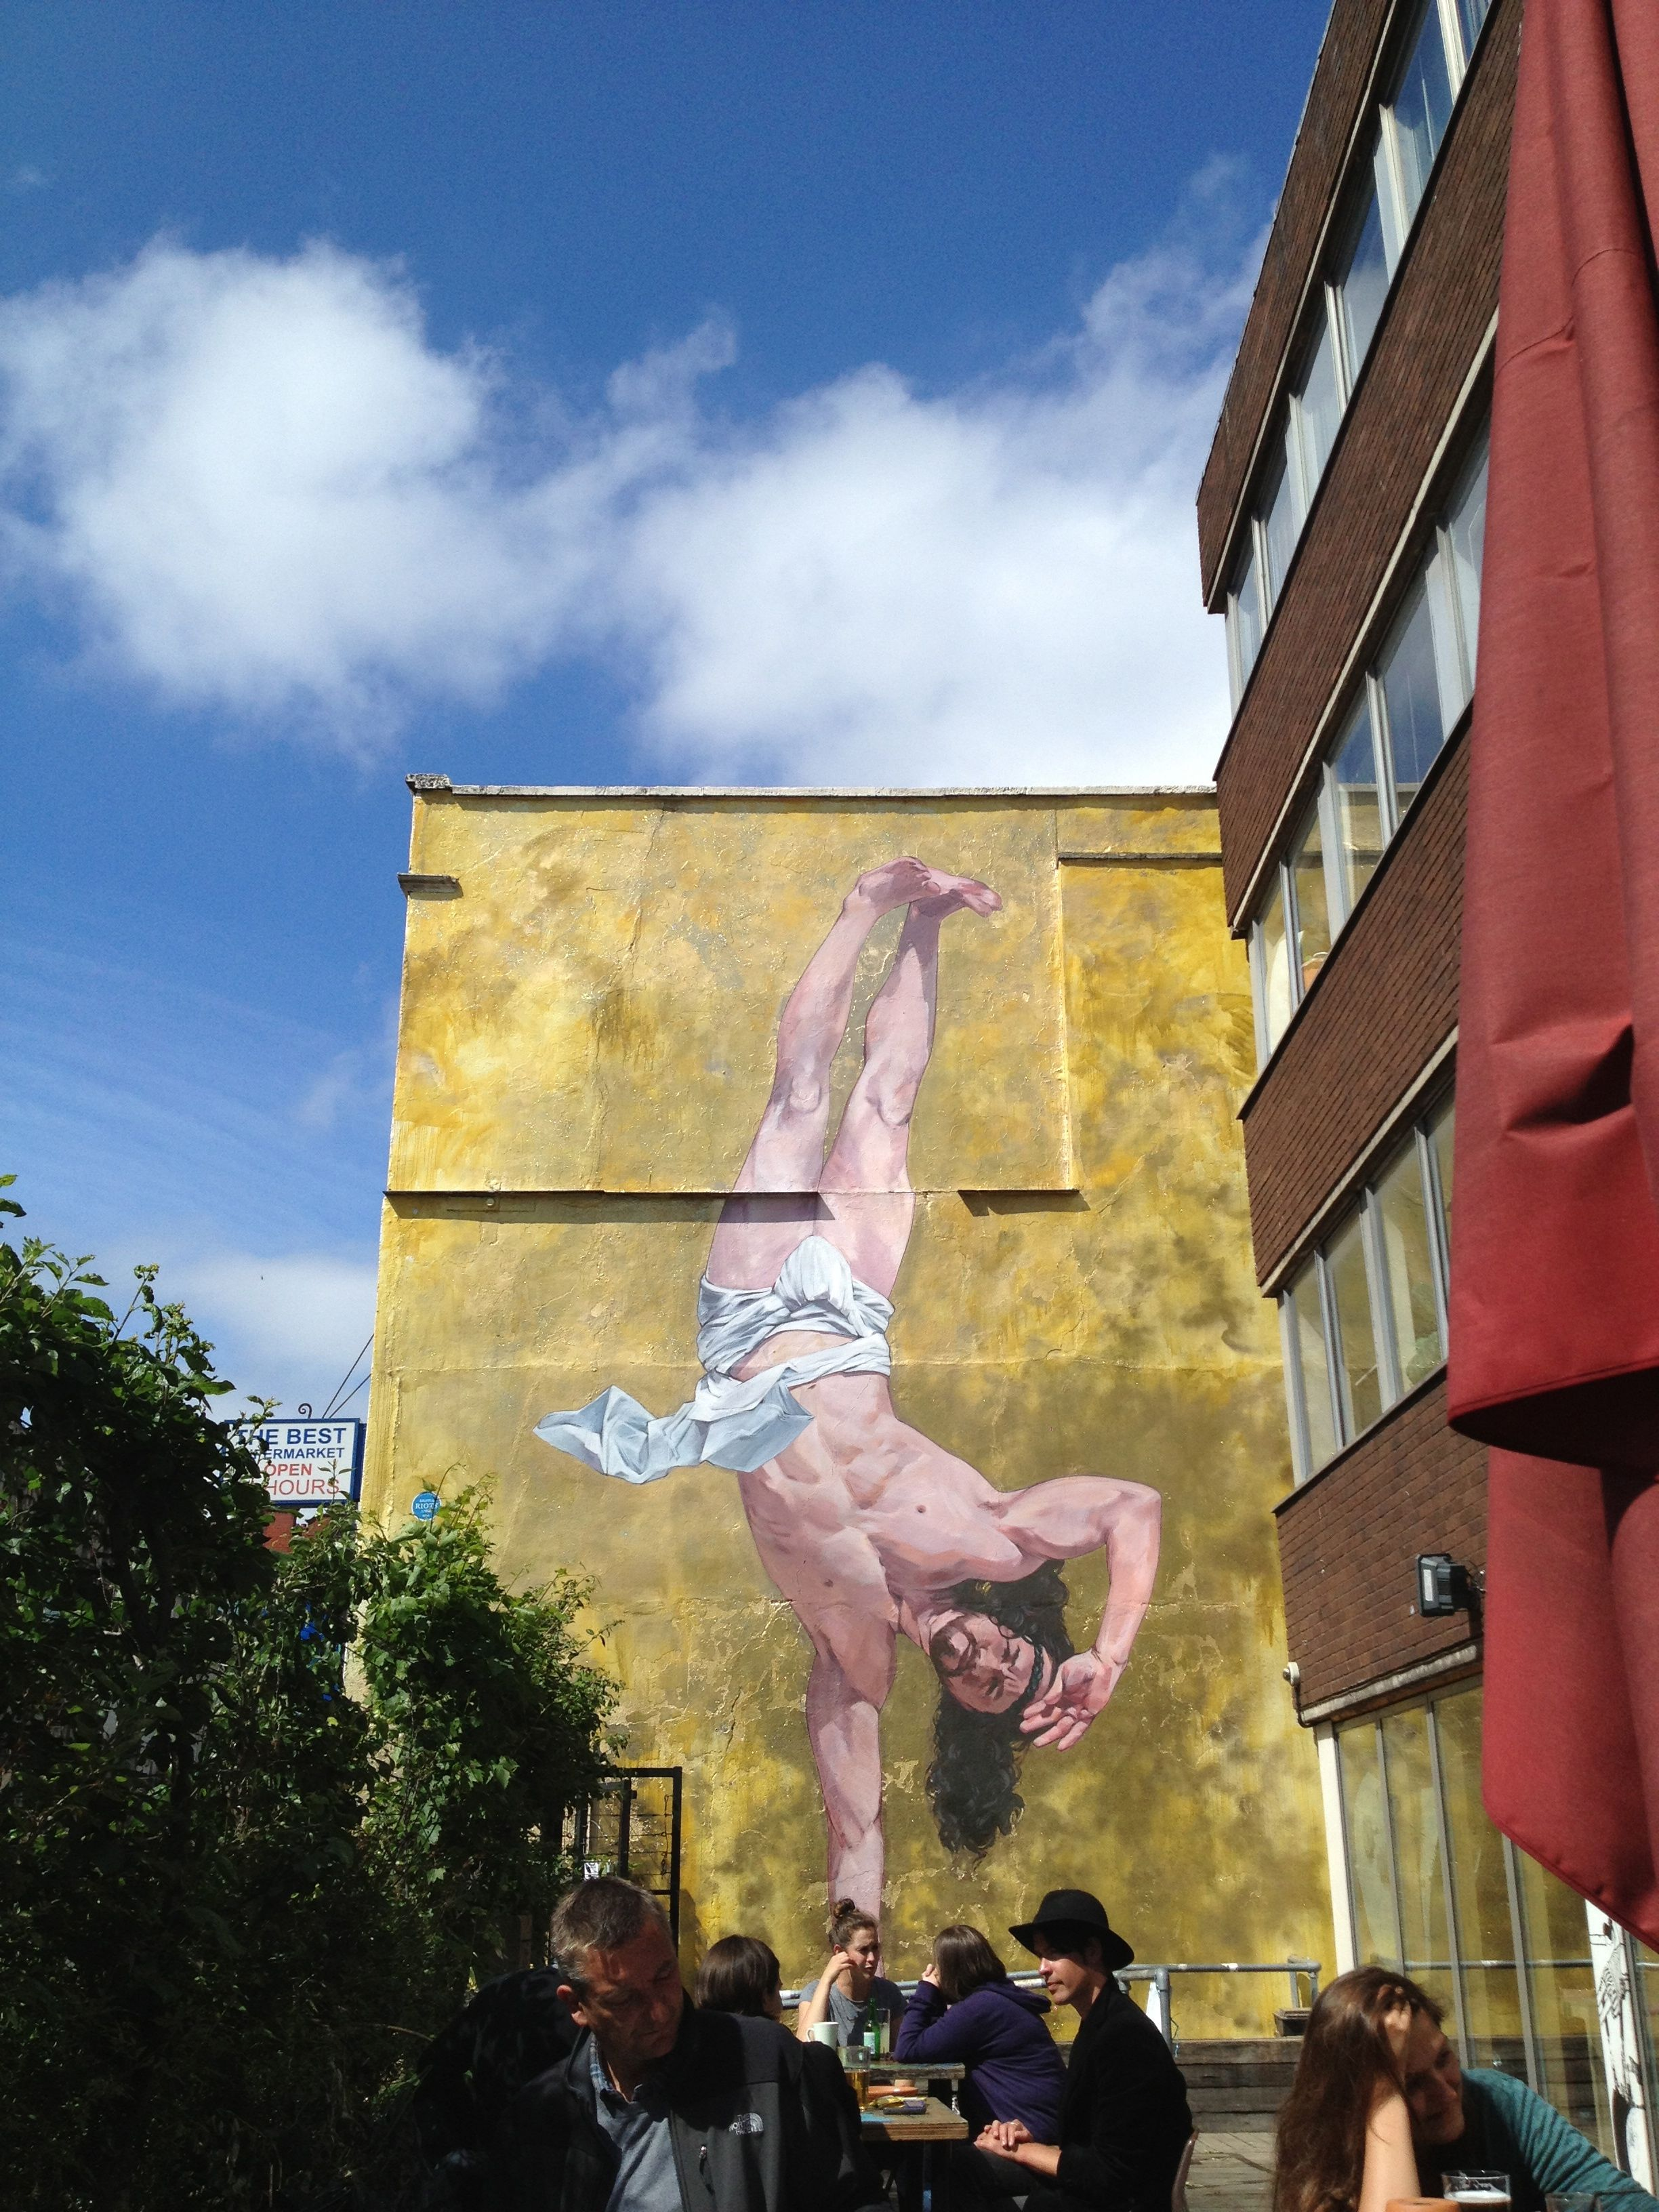 Breakdancing jesus the lord of the dance by london